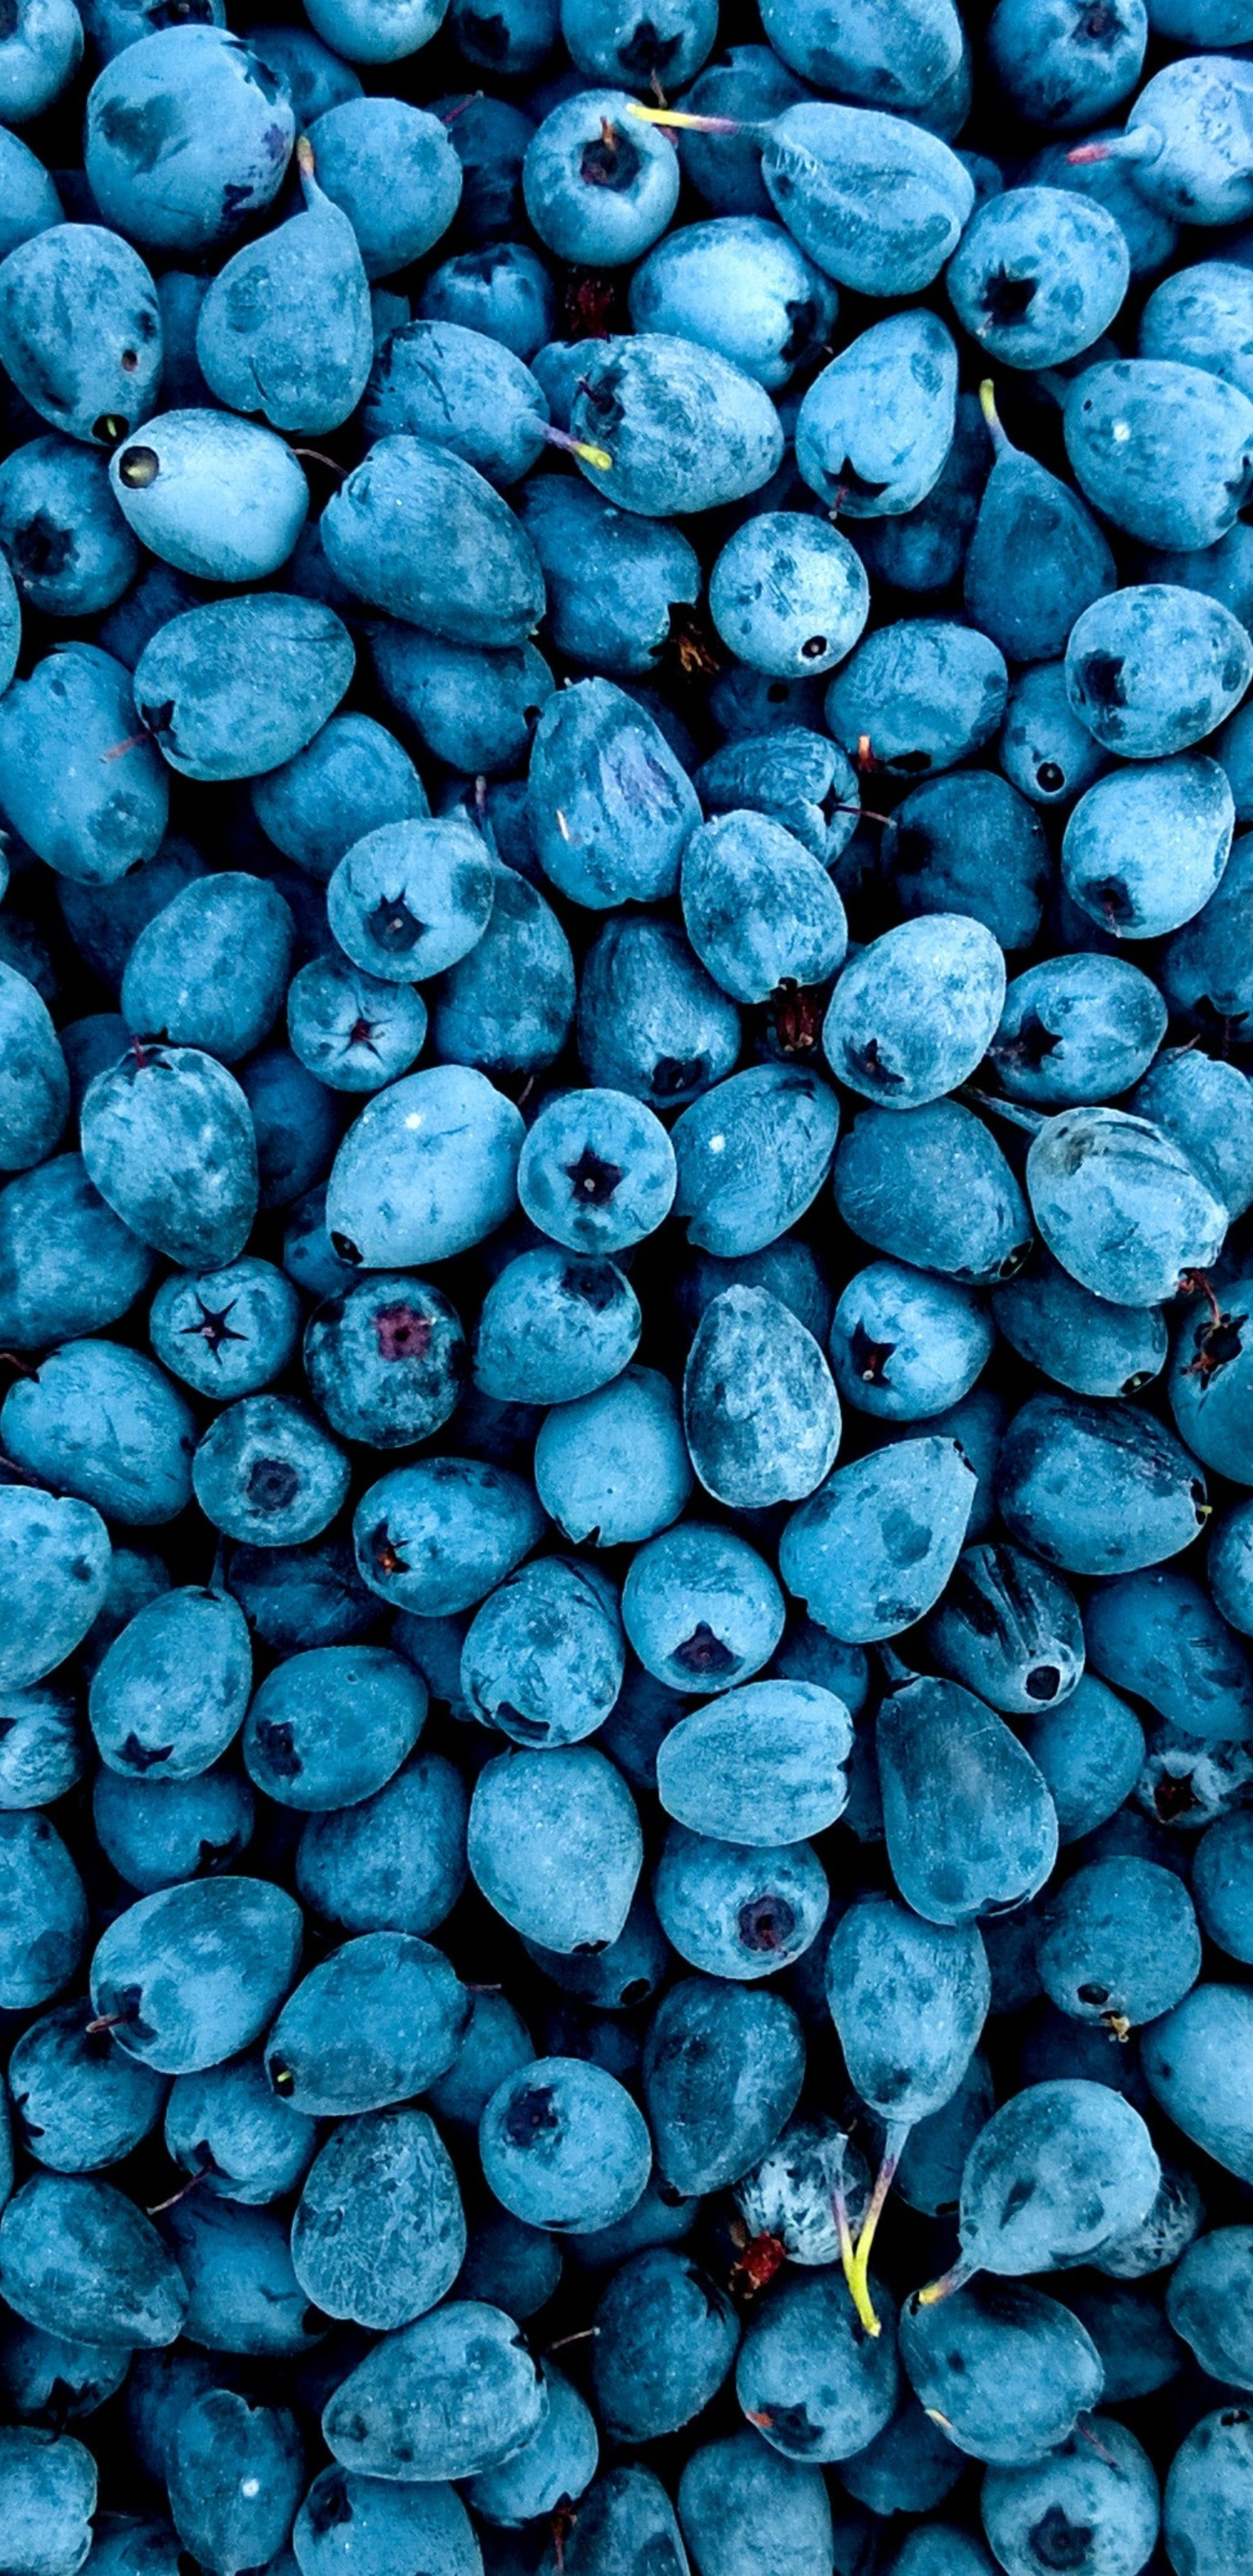 blueberries-qz.jpg